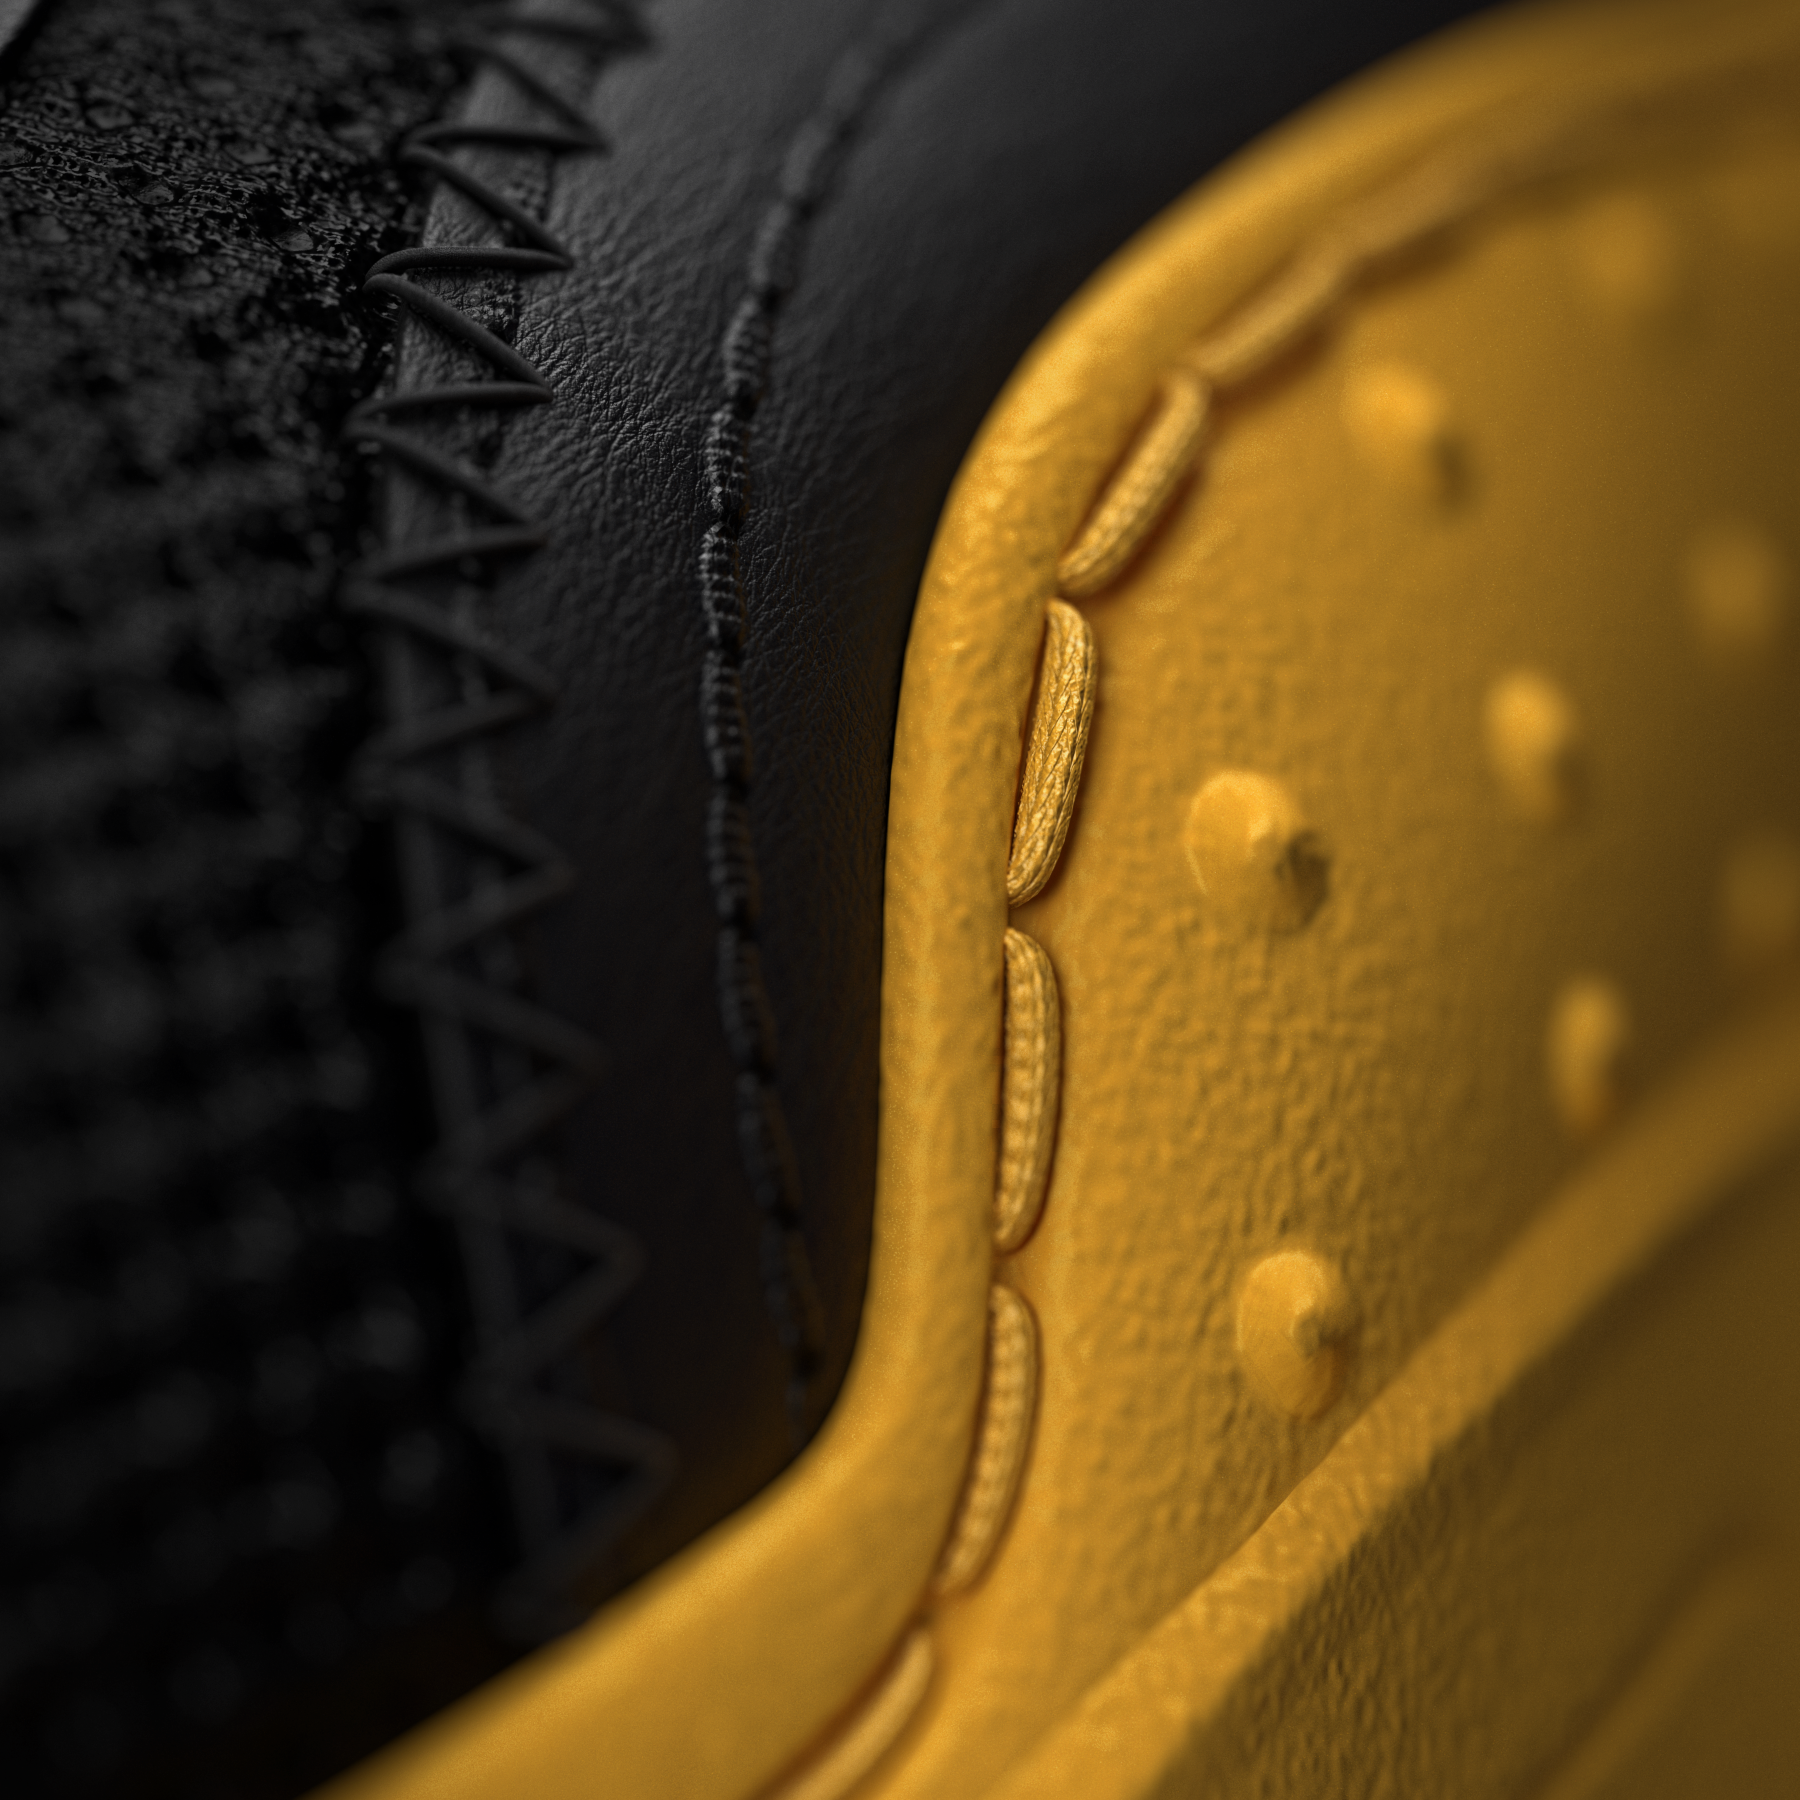 Sneaker's sole detail, close up.